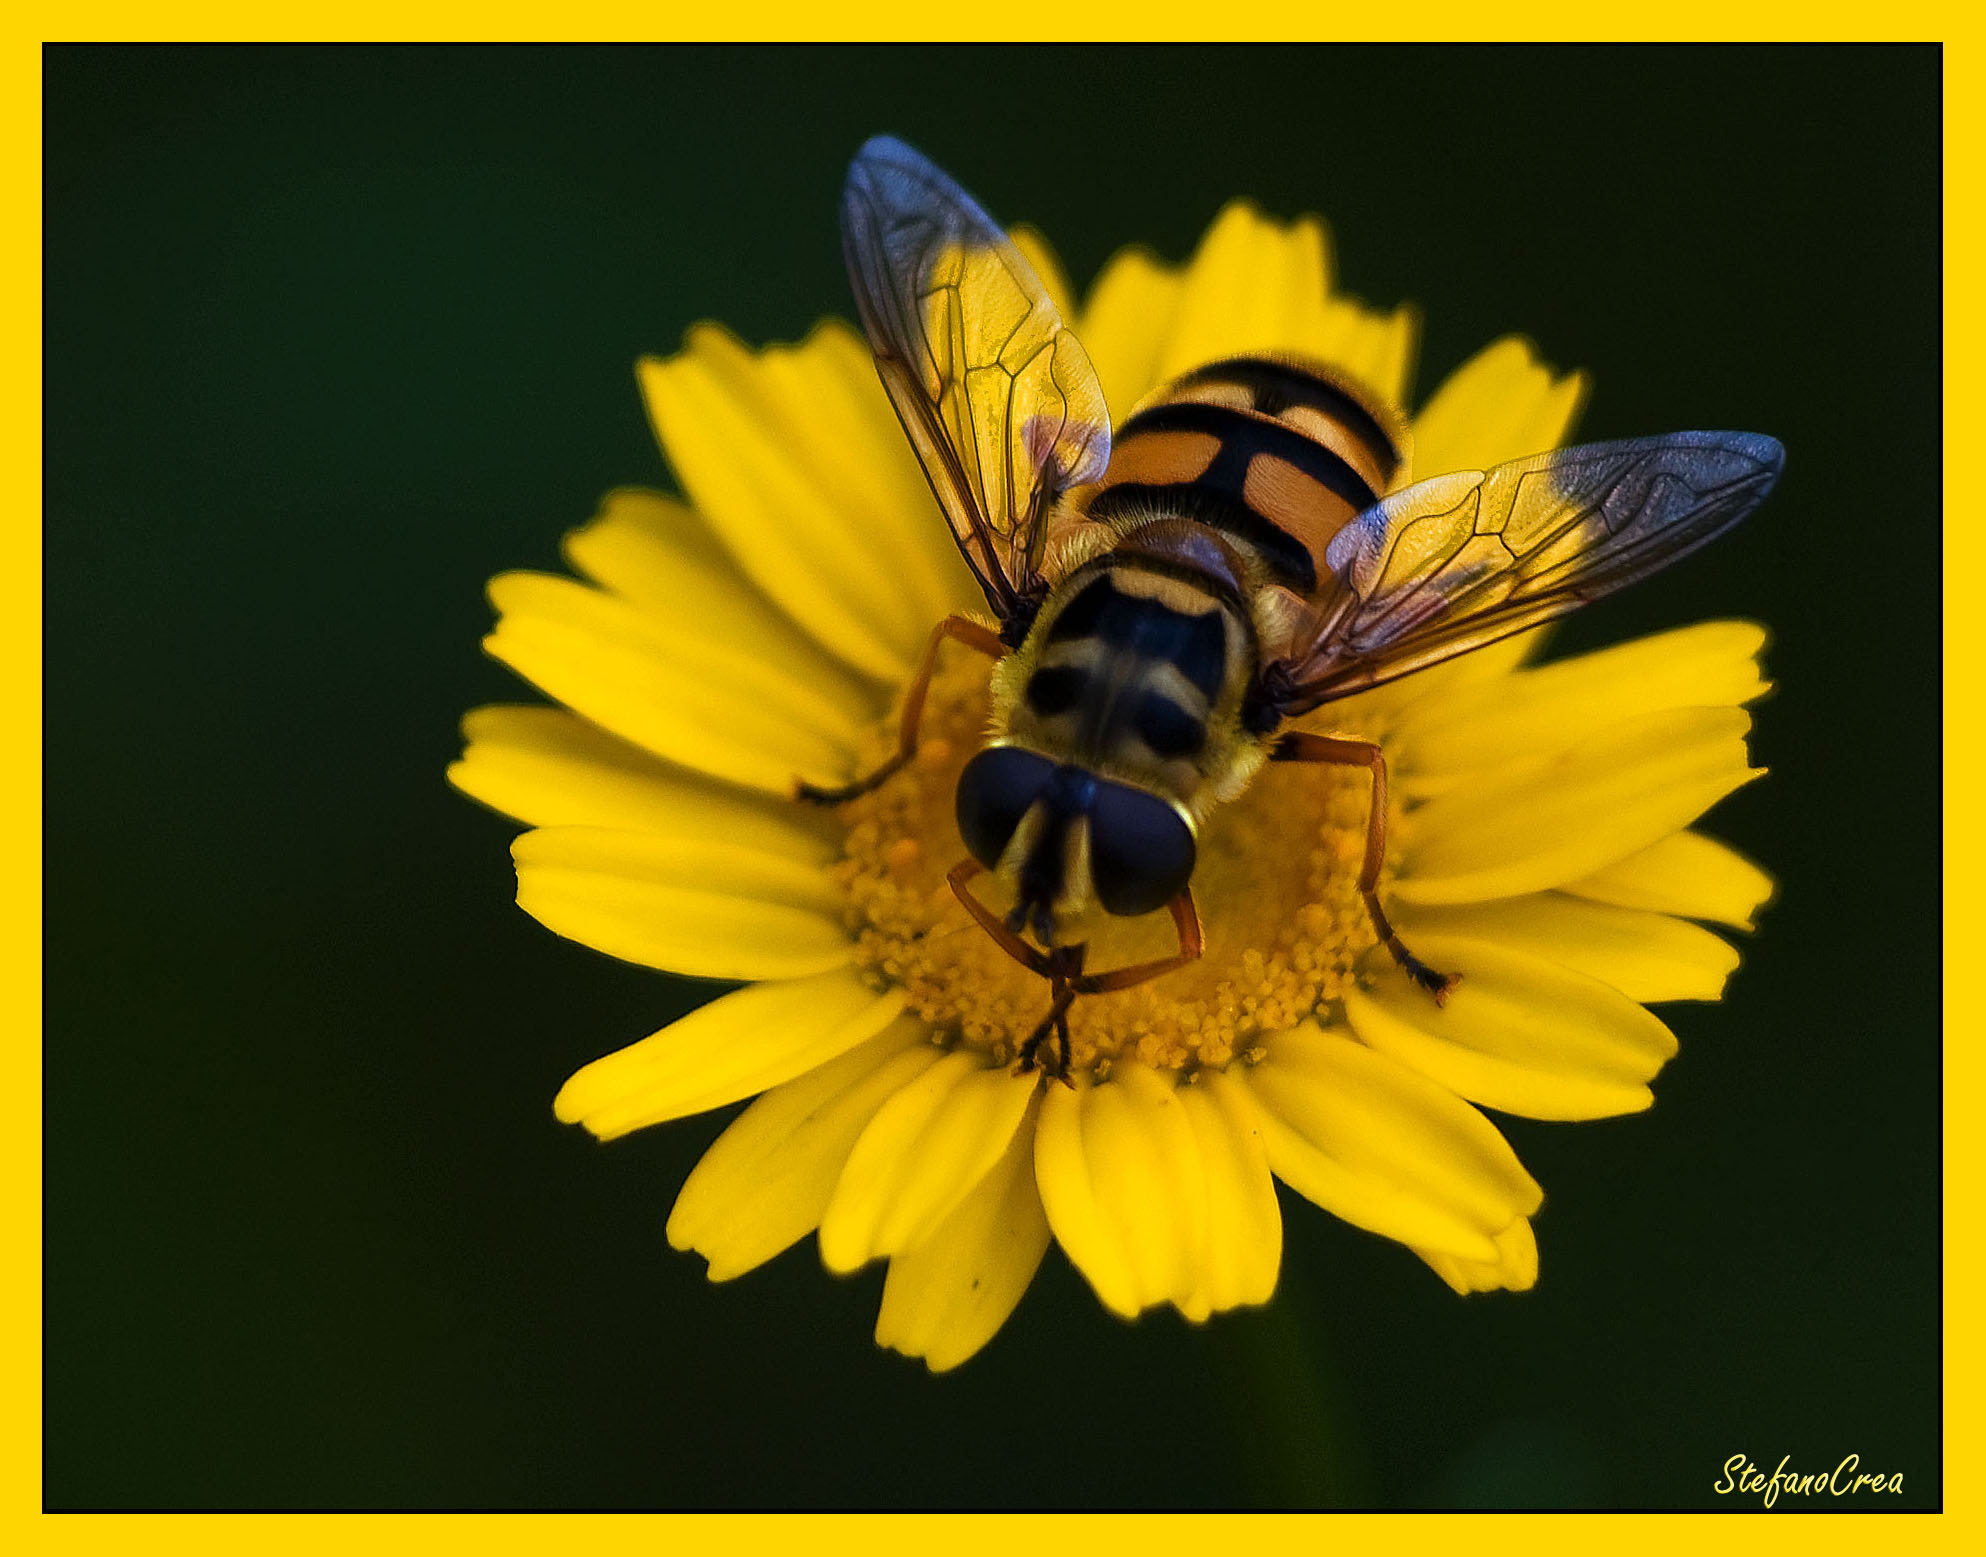 Photograph Yellow daisy by Stefano Crea on 500px